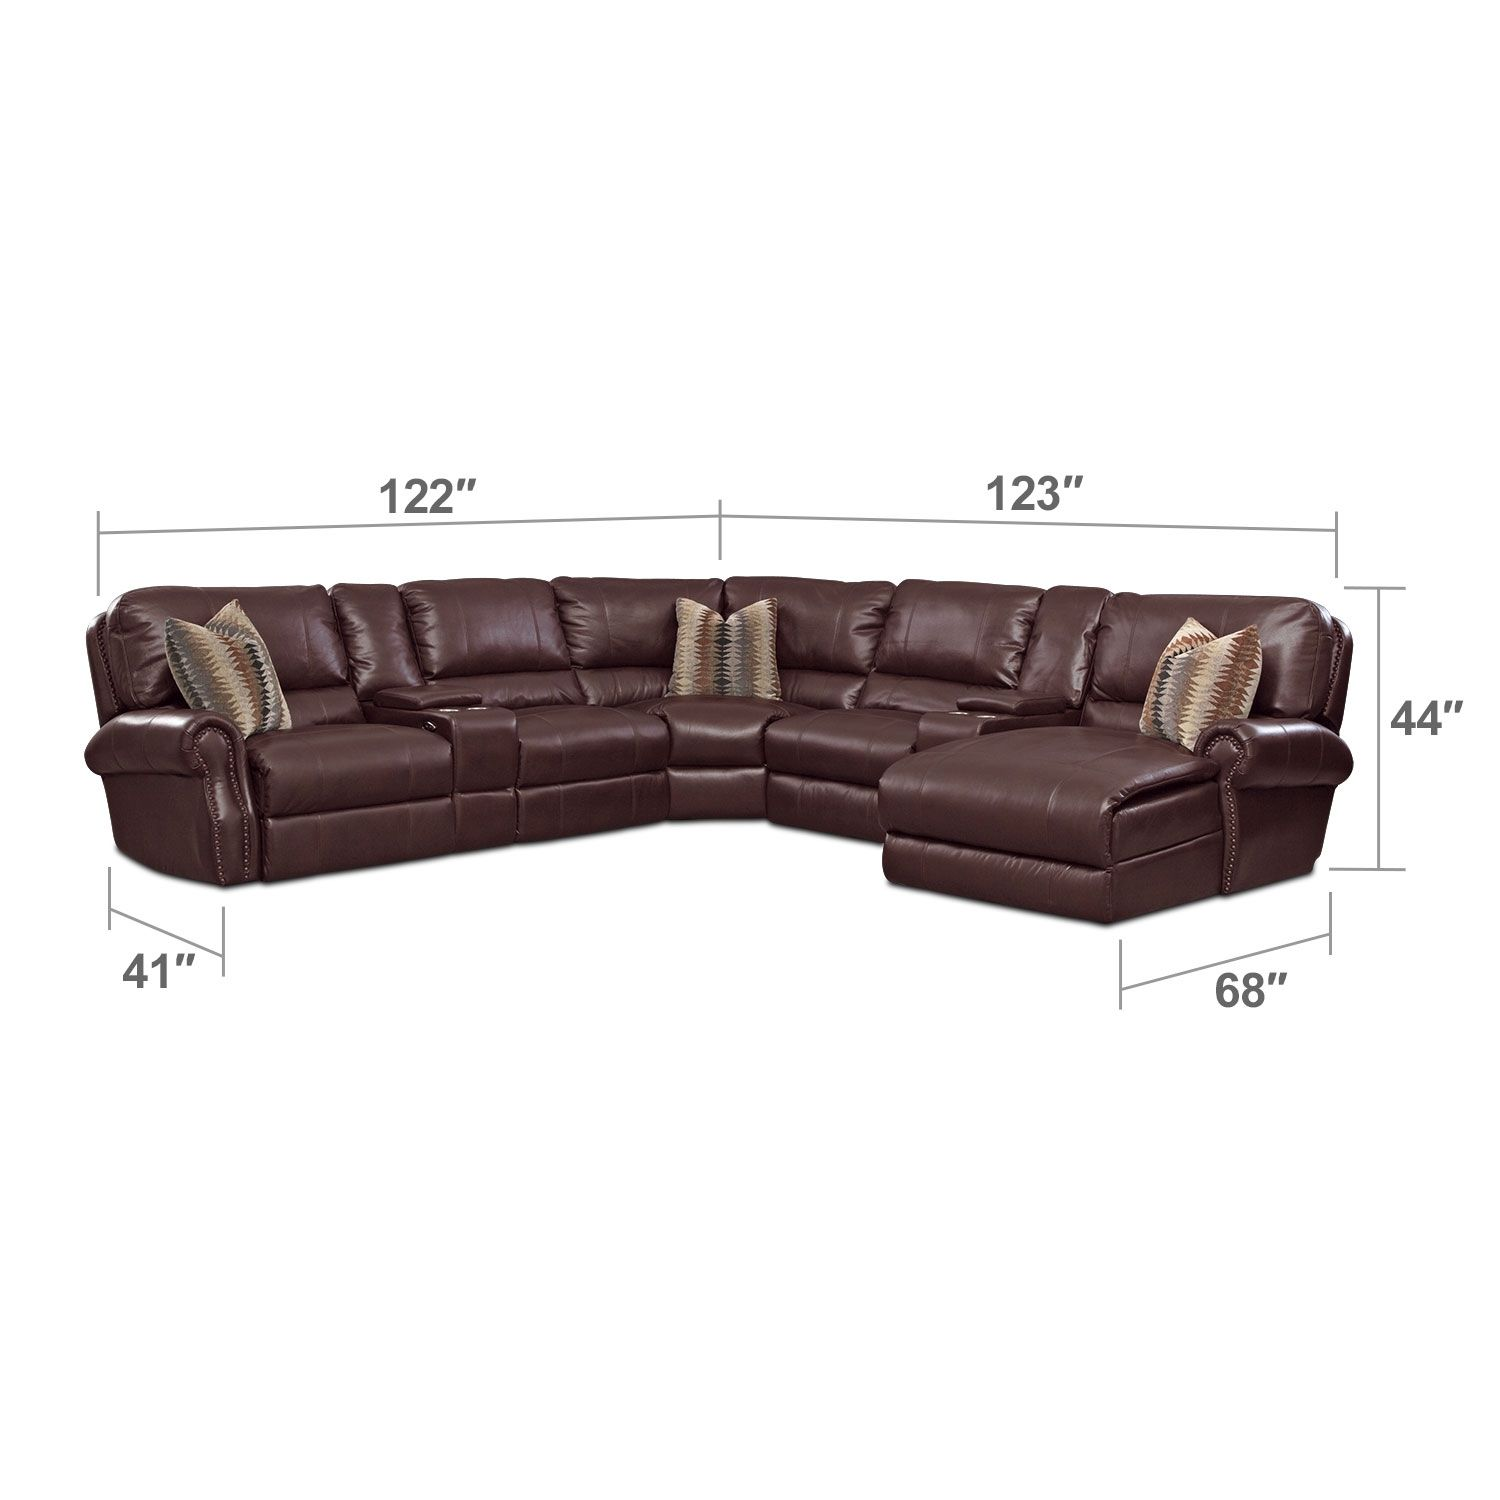 Princeton 5 Pc. Power Reclining Sectional | American Signature Furniture